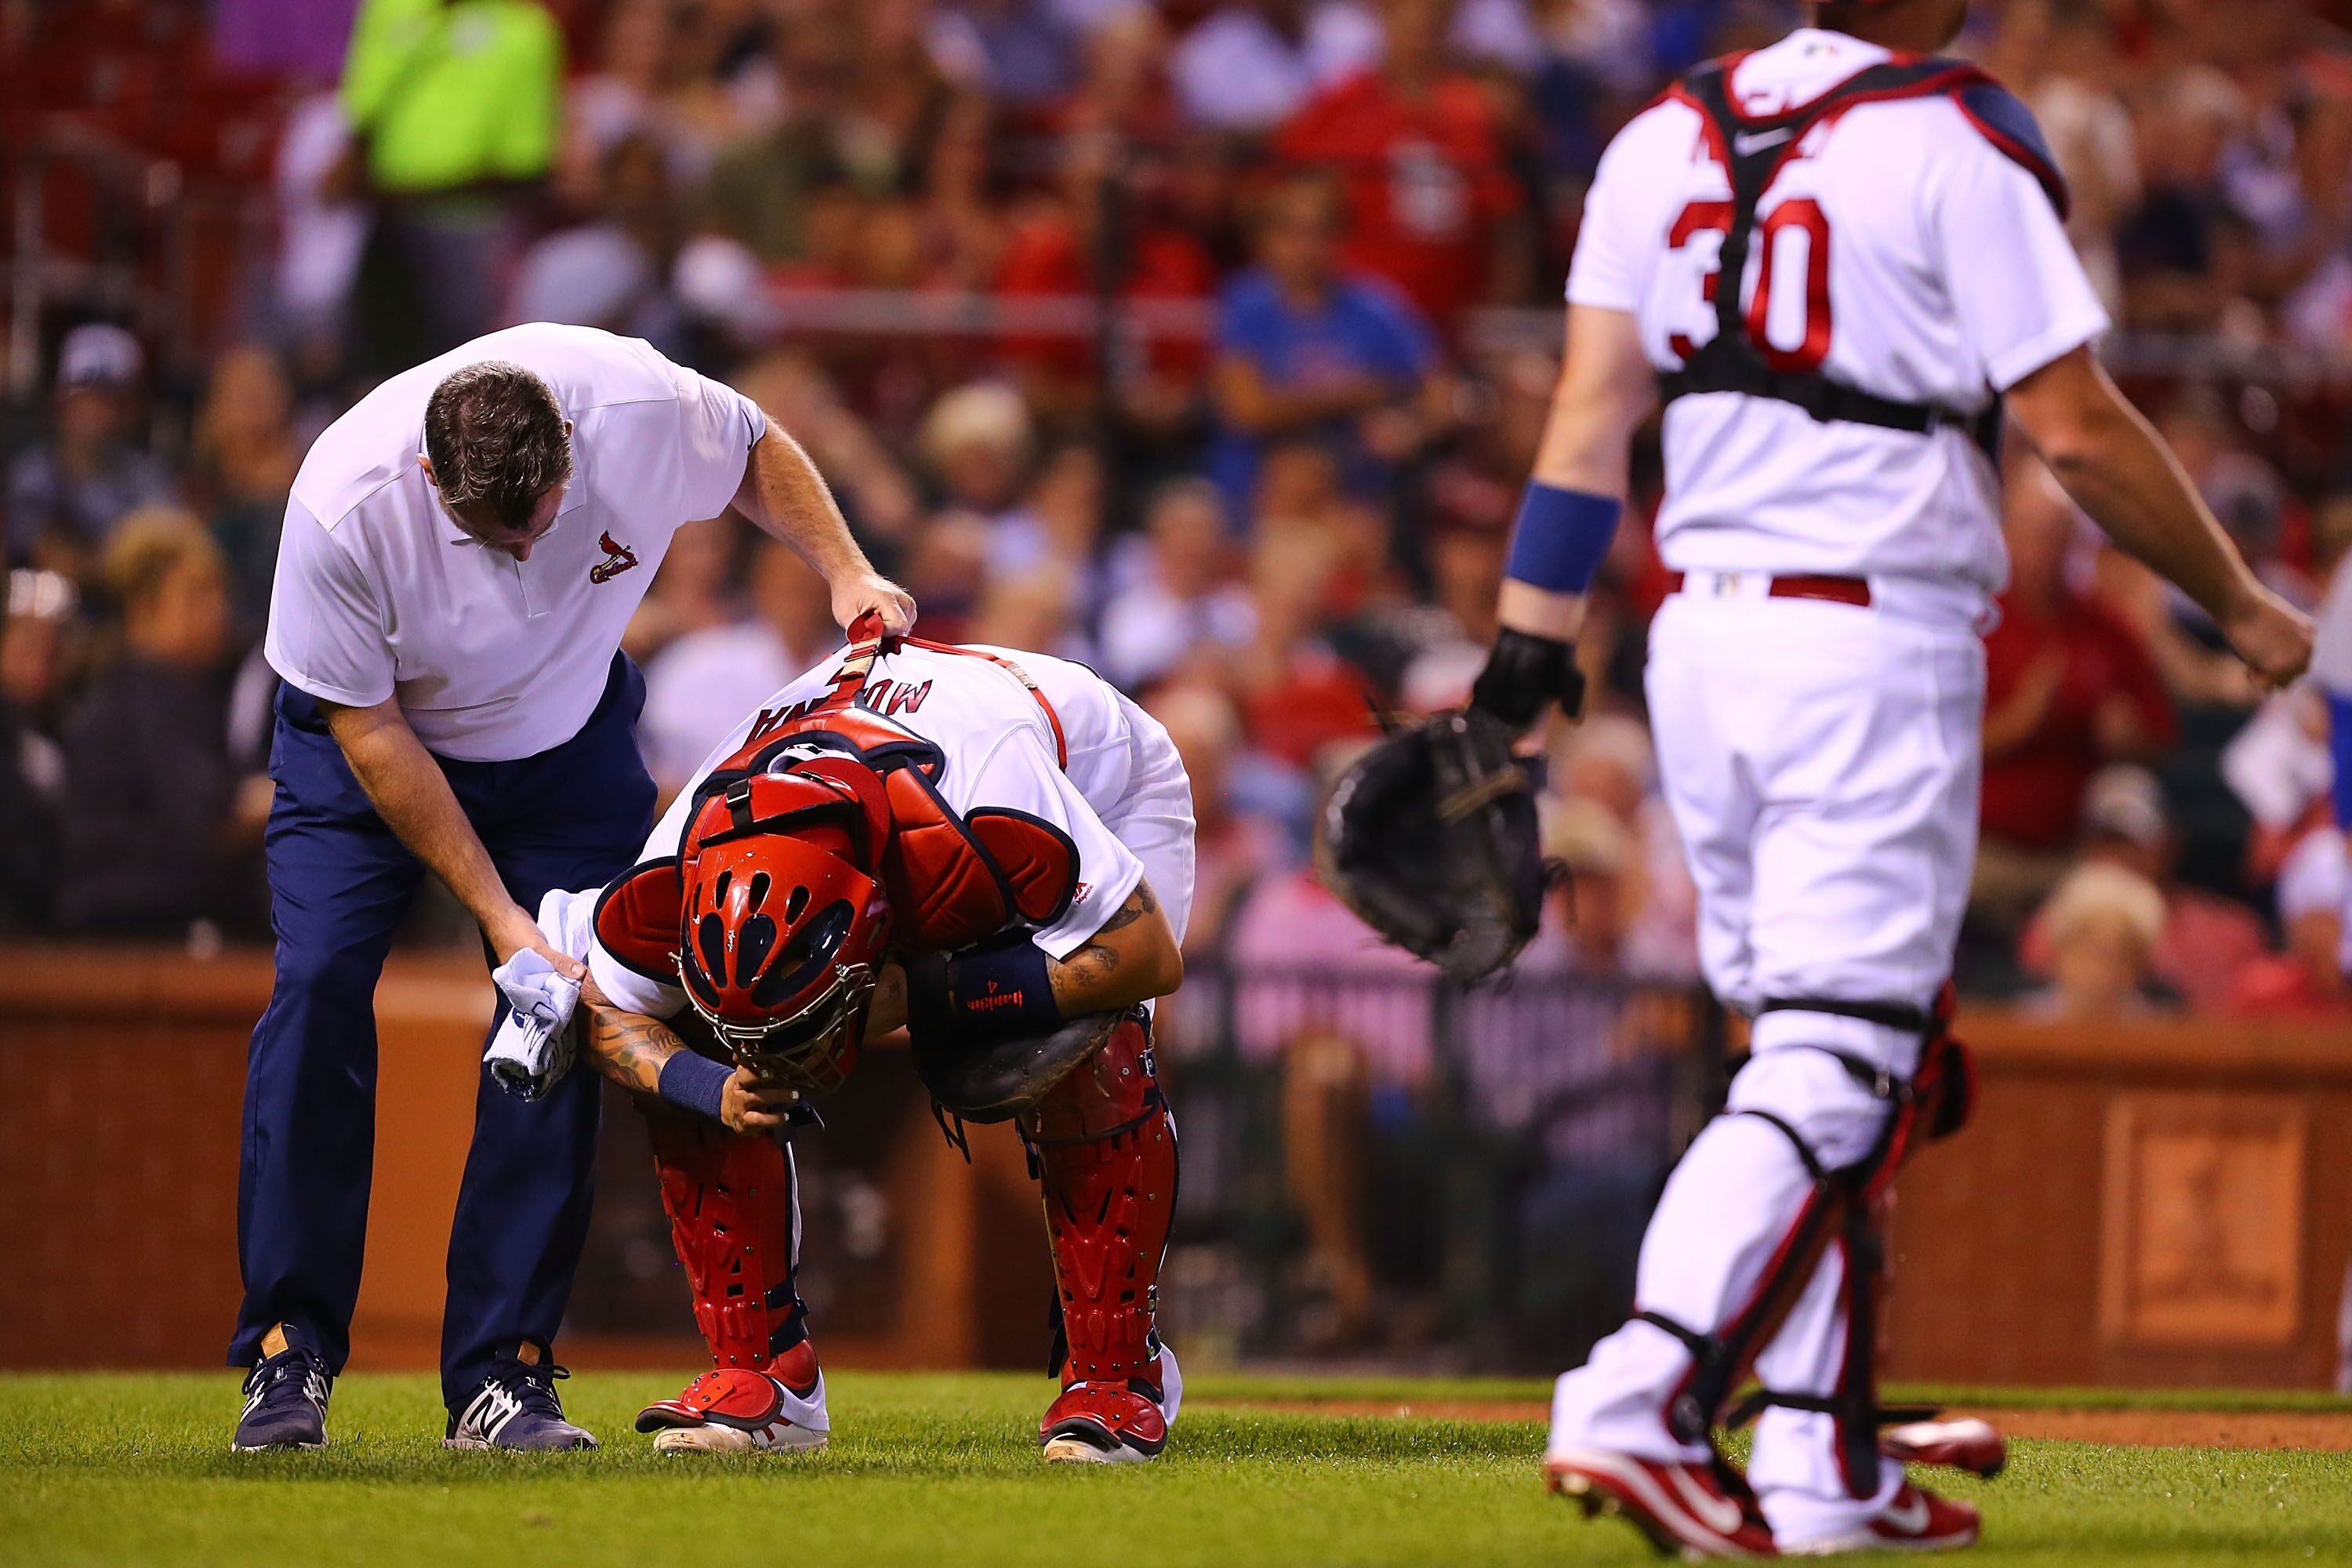 d659e067 St. Louis Cardinals: Yadier Molina NOT in Tuesday's lineup